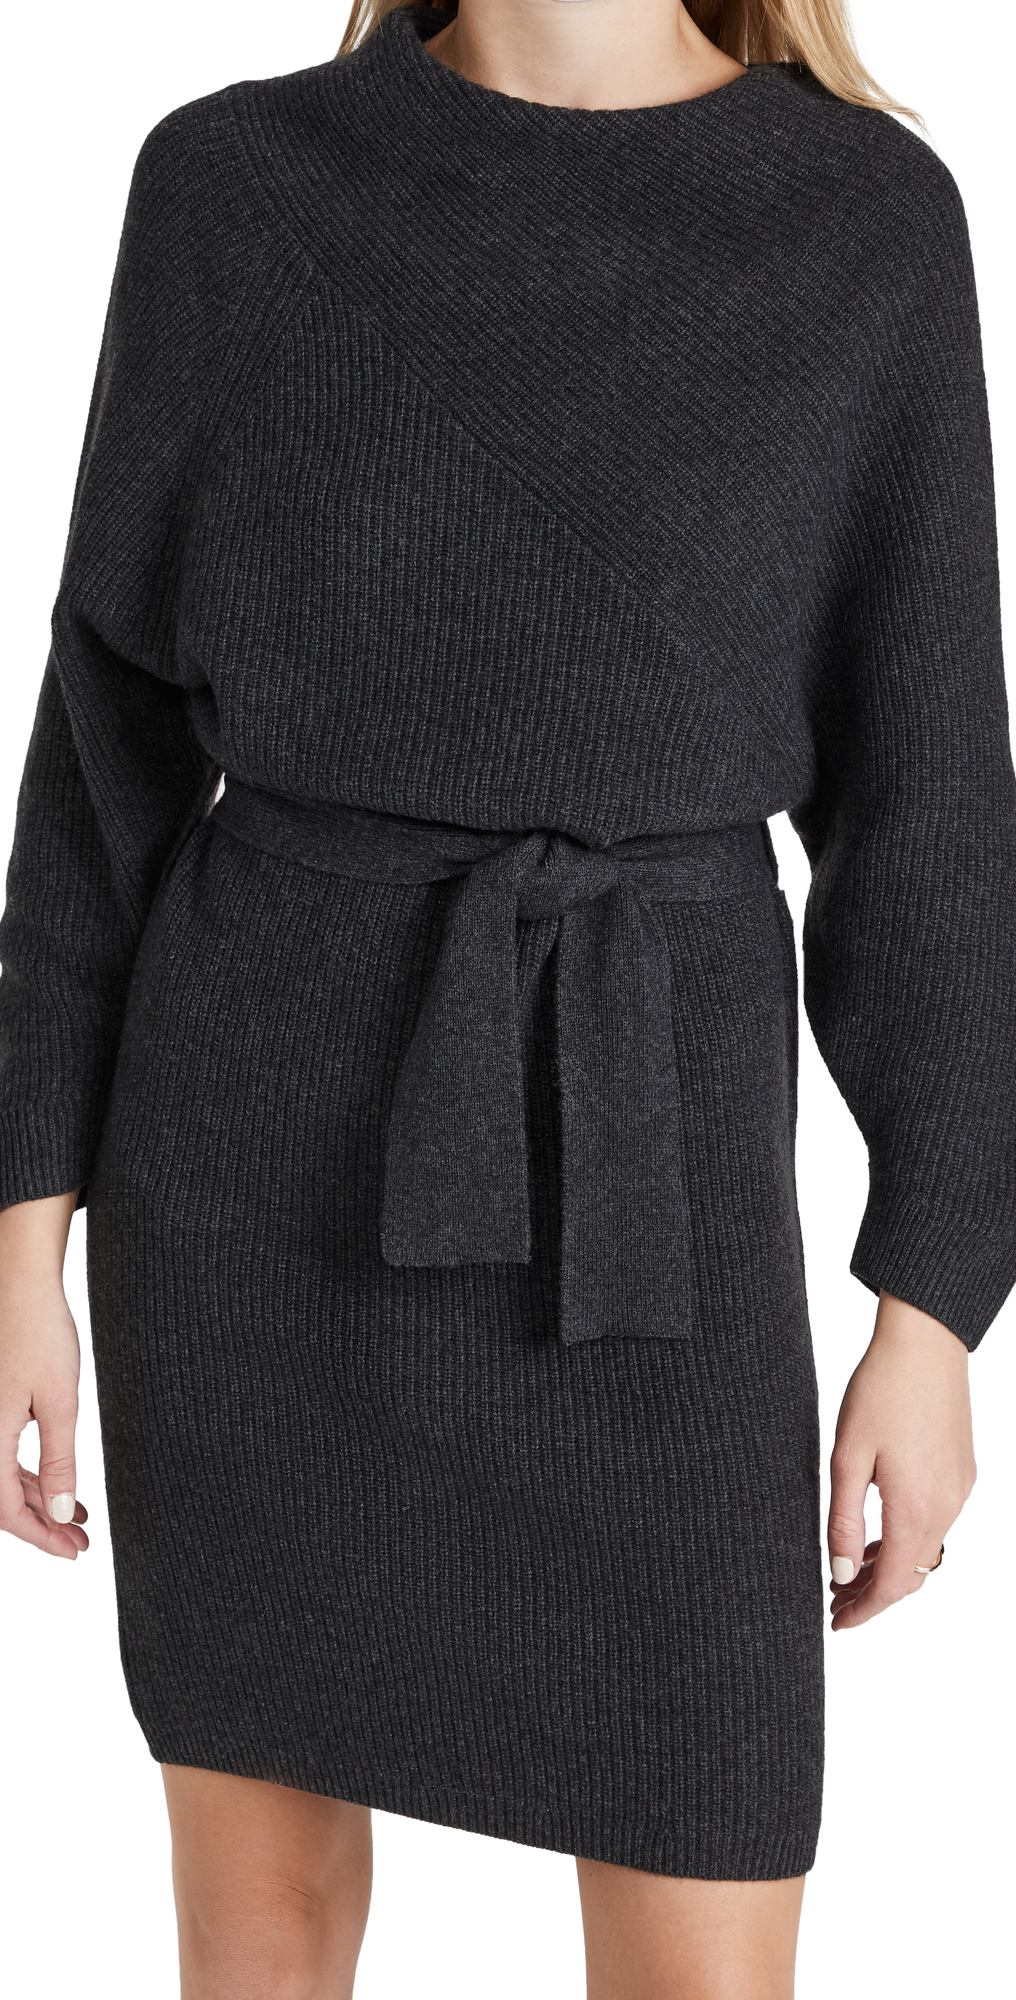 Leith Belted Dress